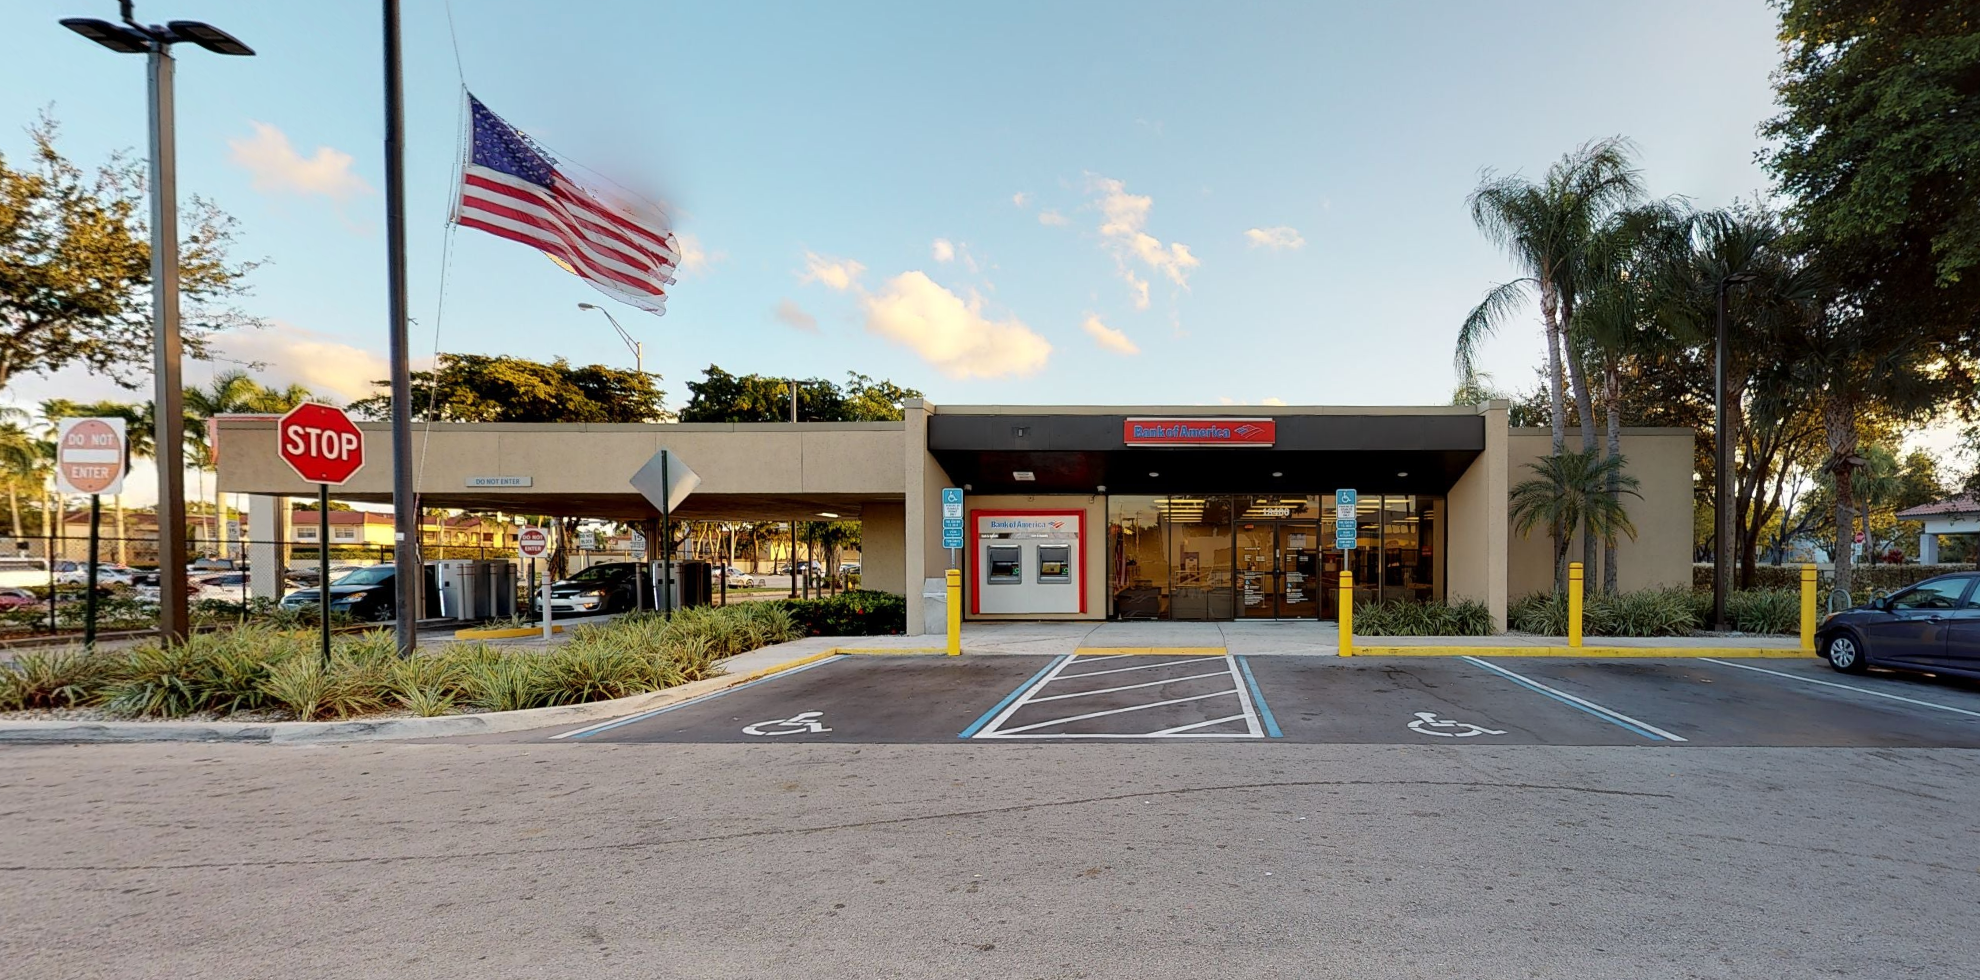 Bank of America financial center with drive-thru ATM   18400 NW 67th Ave, Hialeah, FL 33015